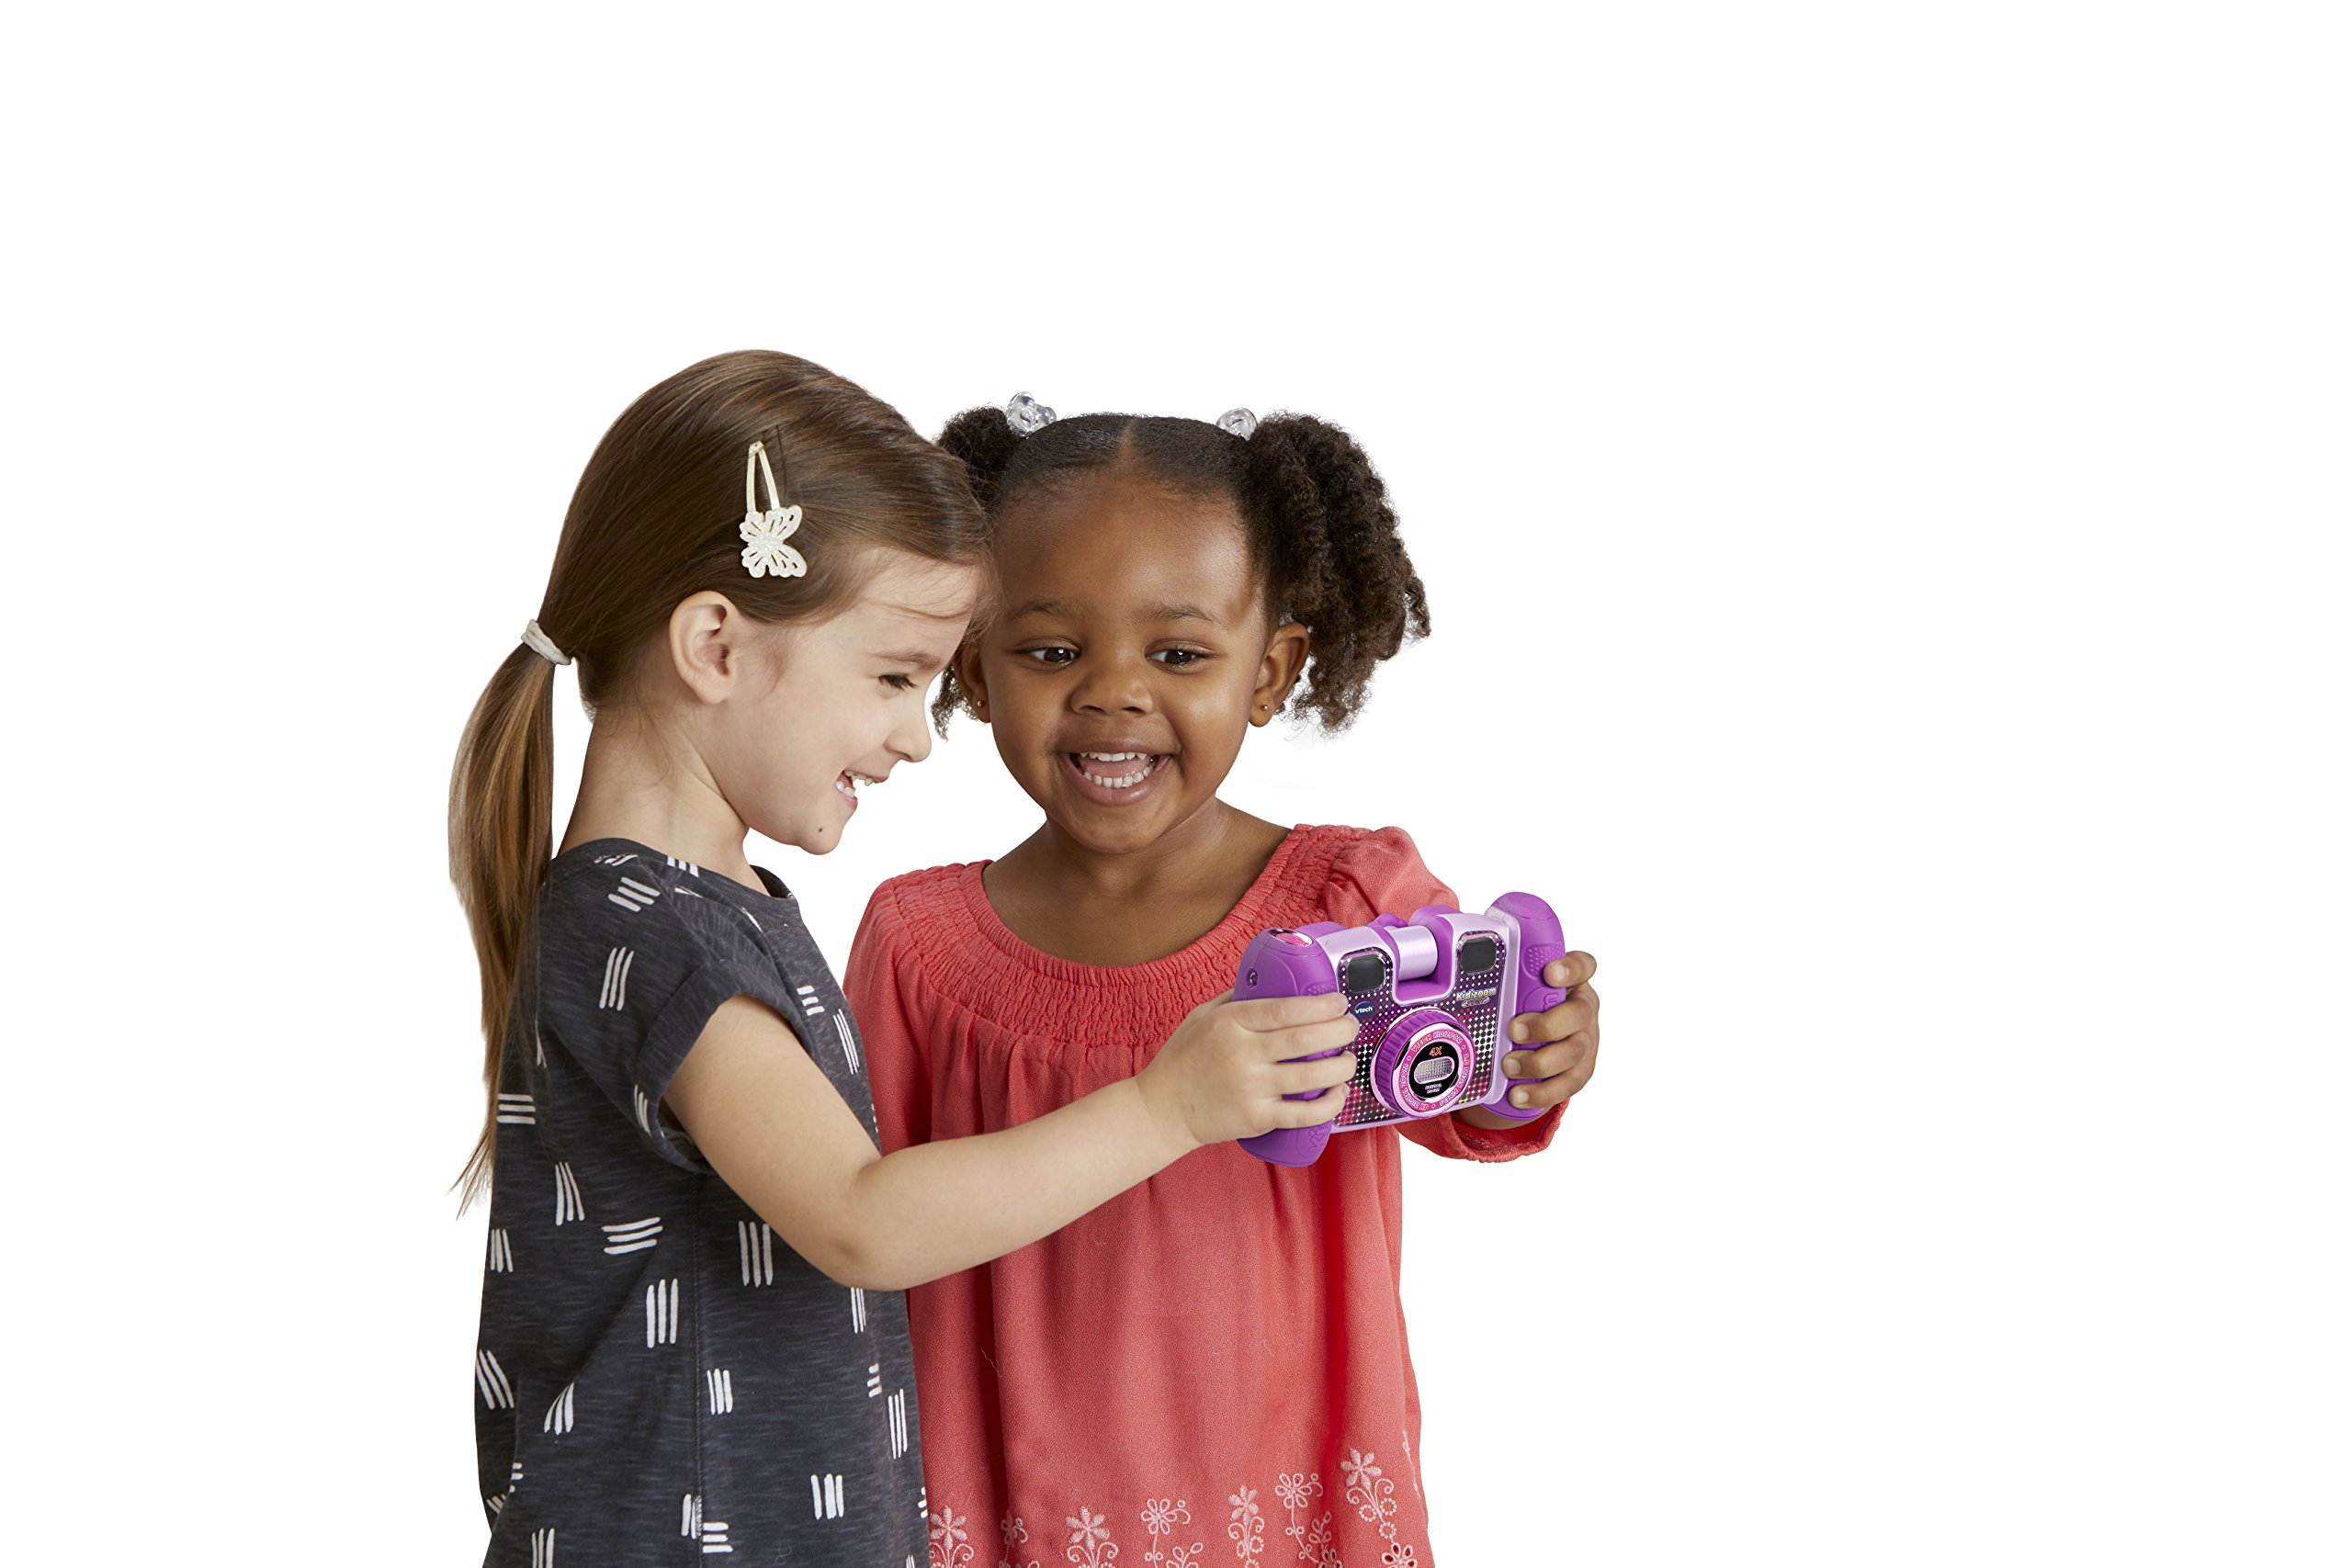 VTech Kidizoom Twist Connect Camera, Purple by VTech (Image #7)